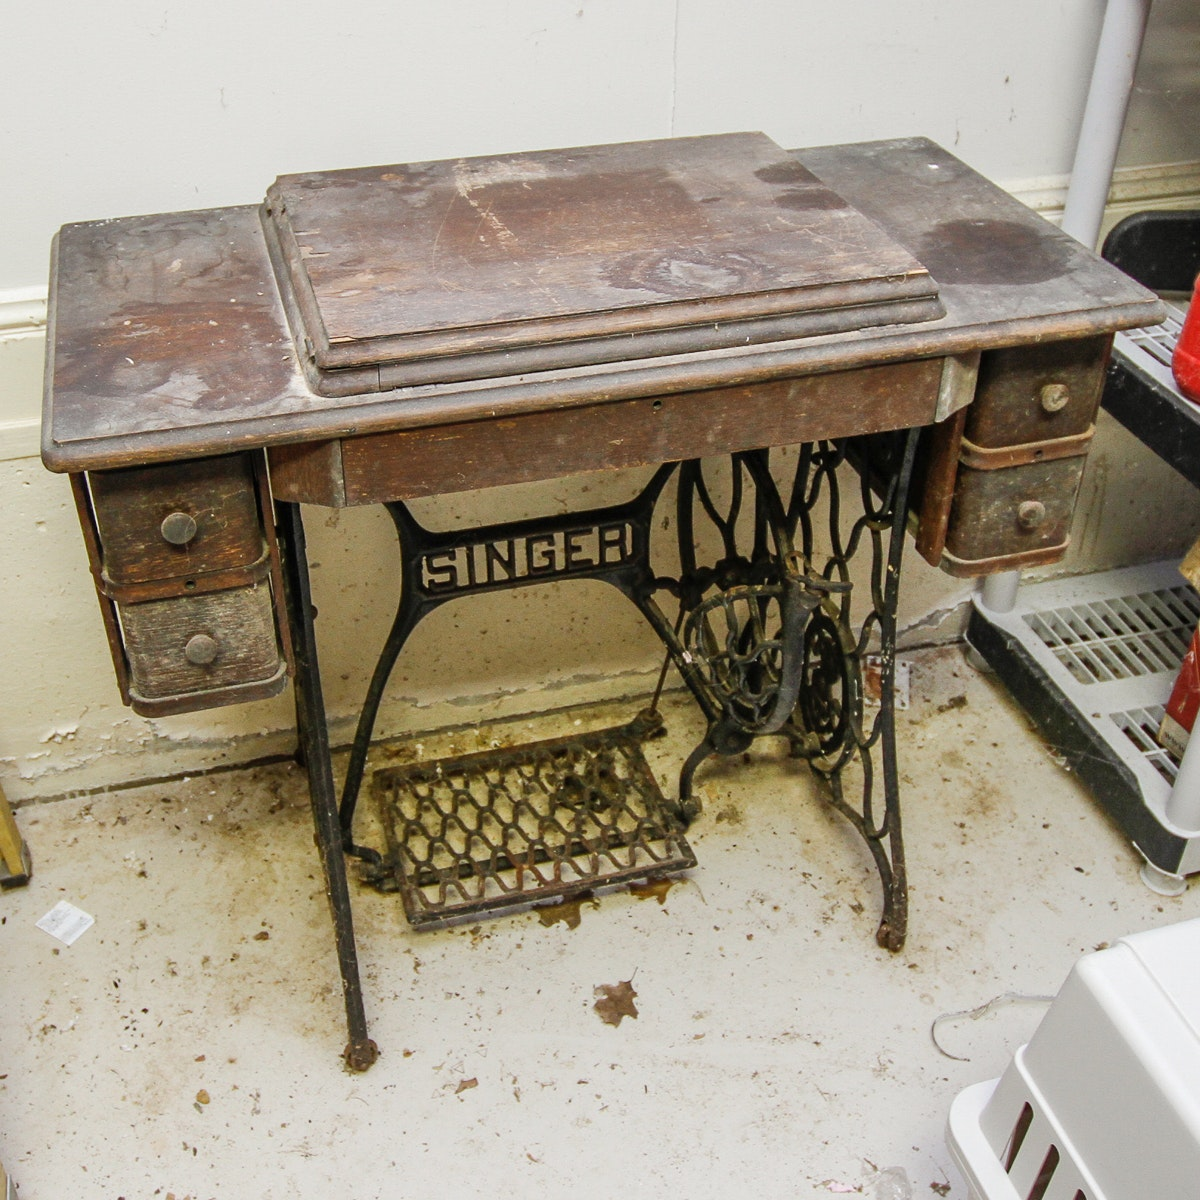 Vintage Singer Sewing Machine and Work Table